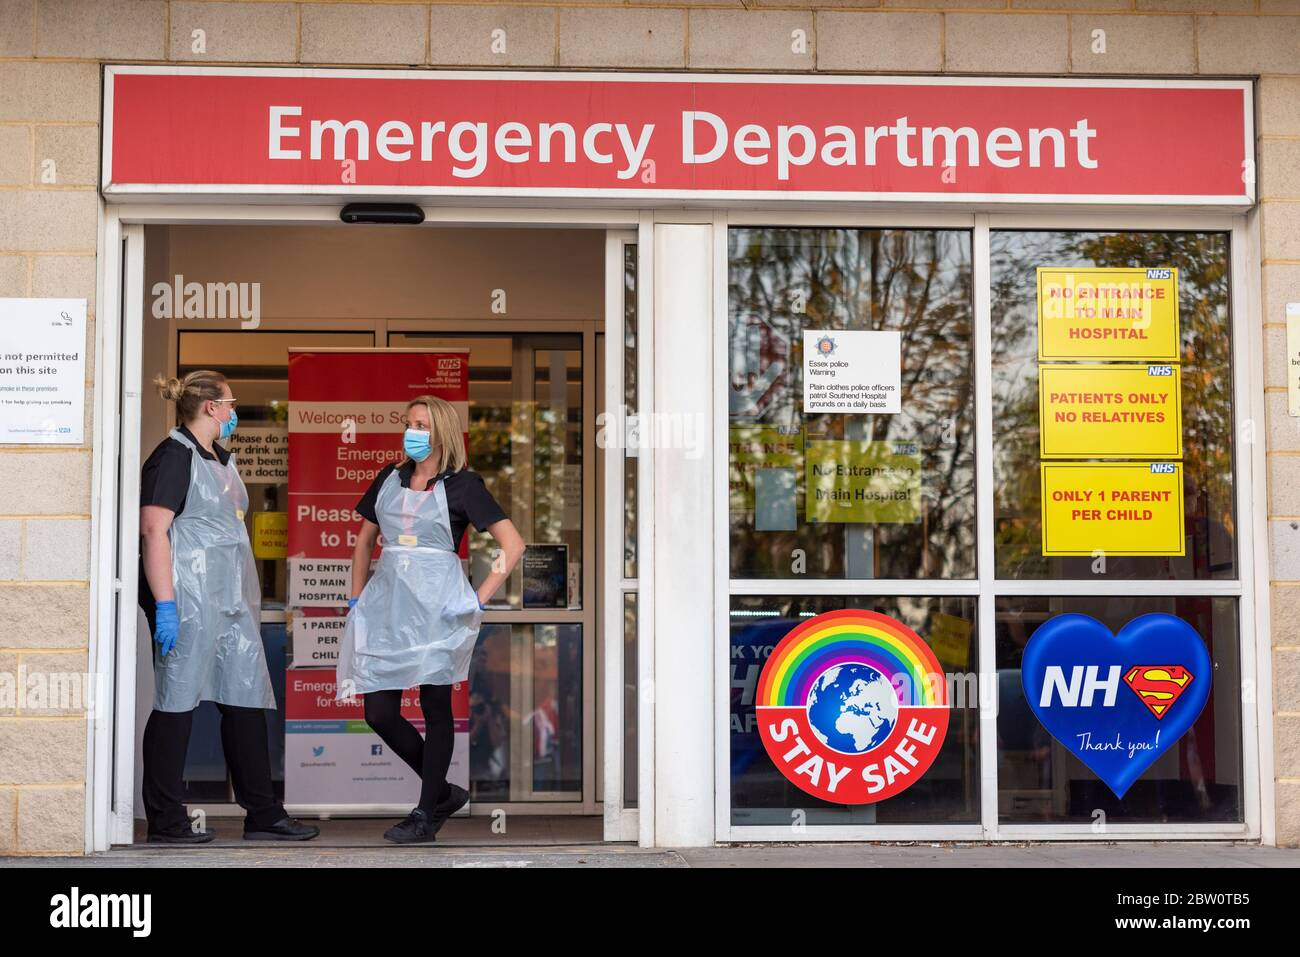 health-staff-at-emergency-department-entrance-at-southend-university-hospital-essex-uk-two-nurses-in-basic-ppe-with-surgical-face-masks-covid-19-2BW0TB5.jpg